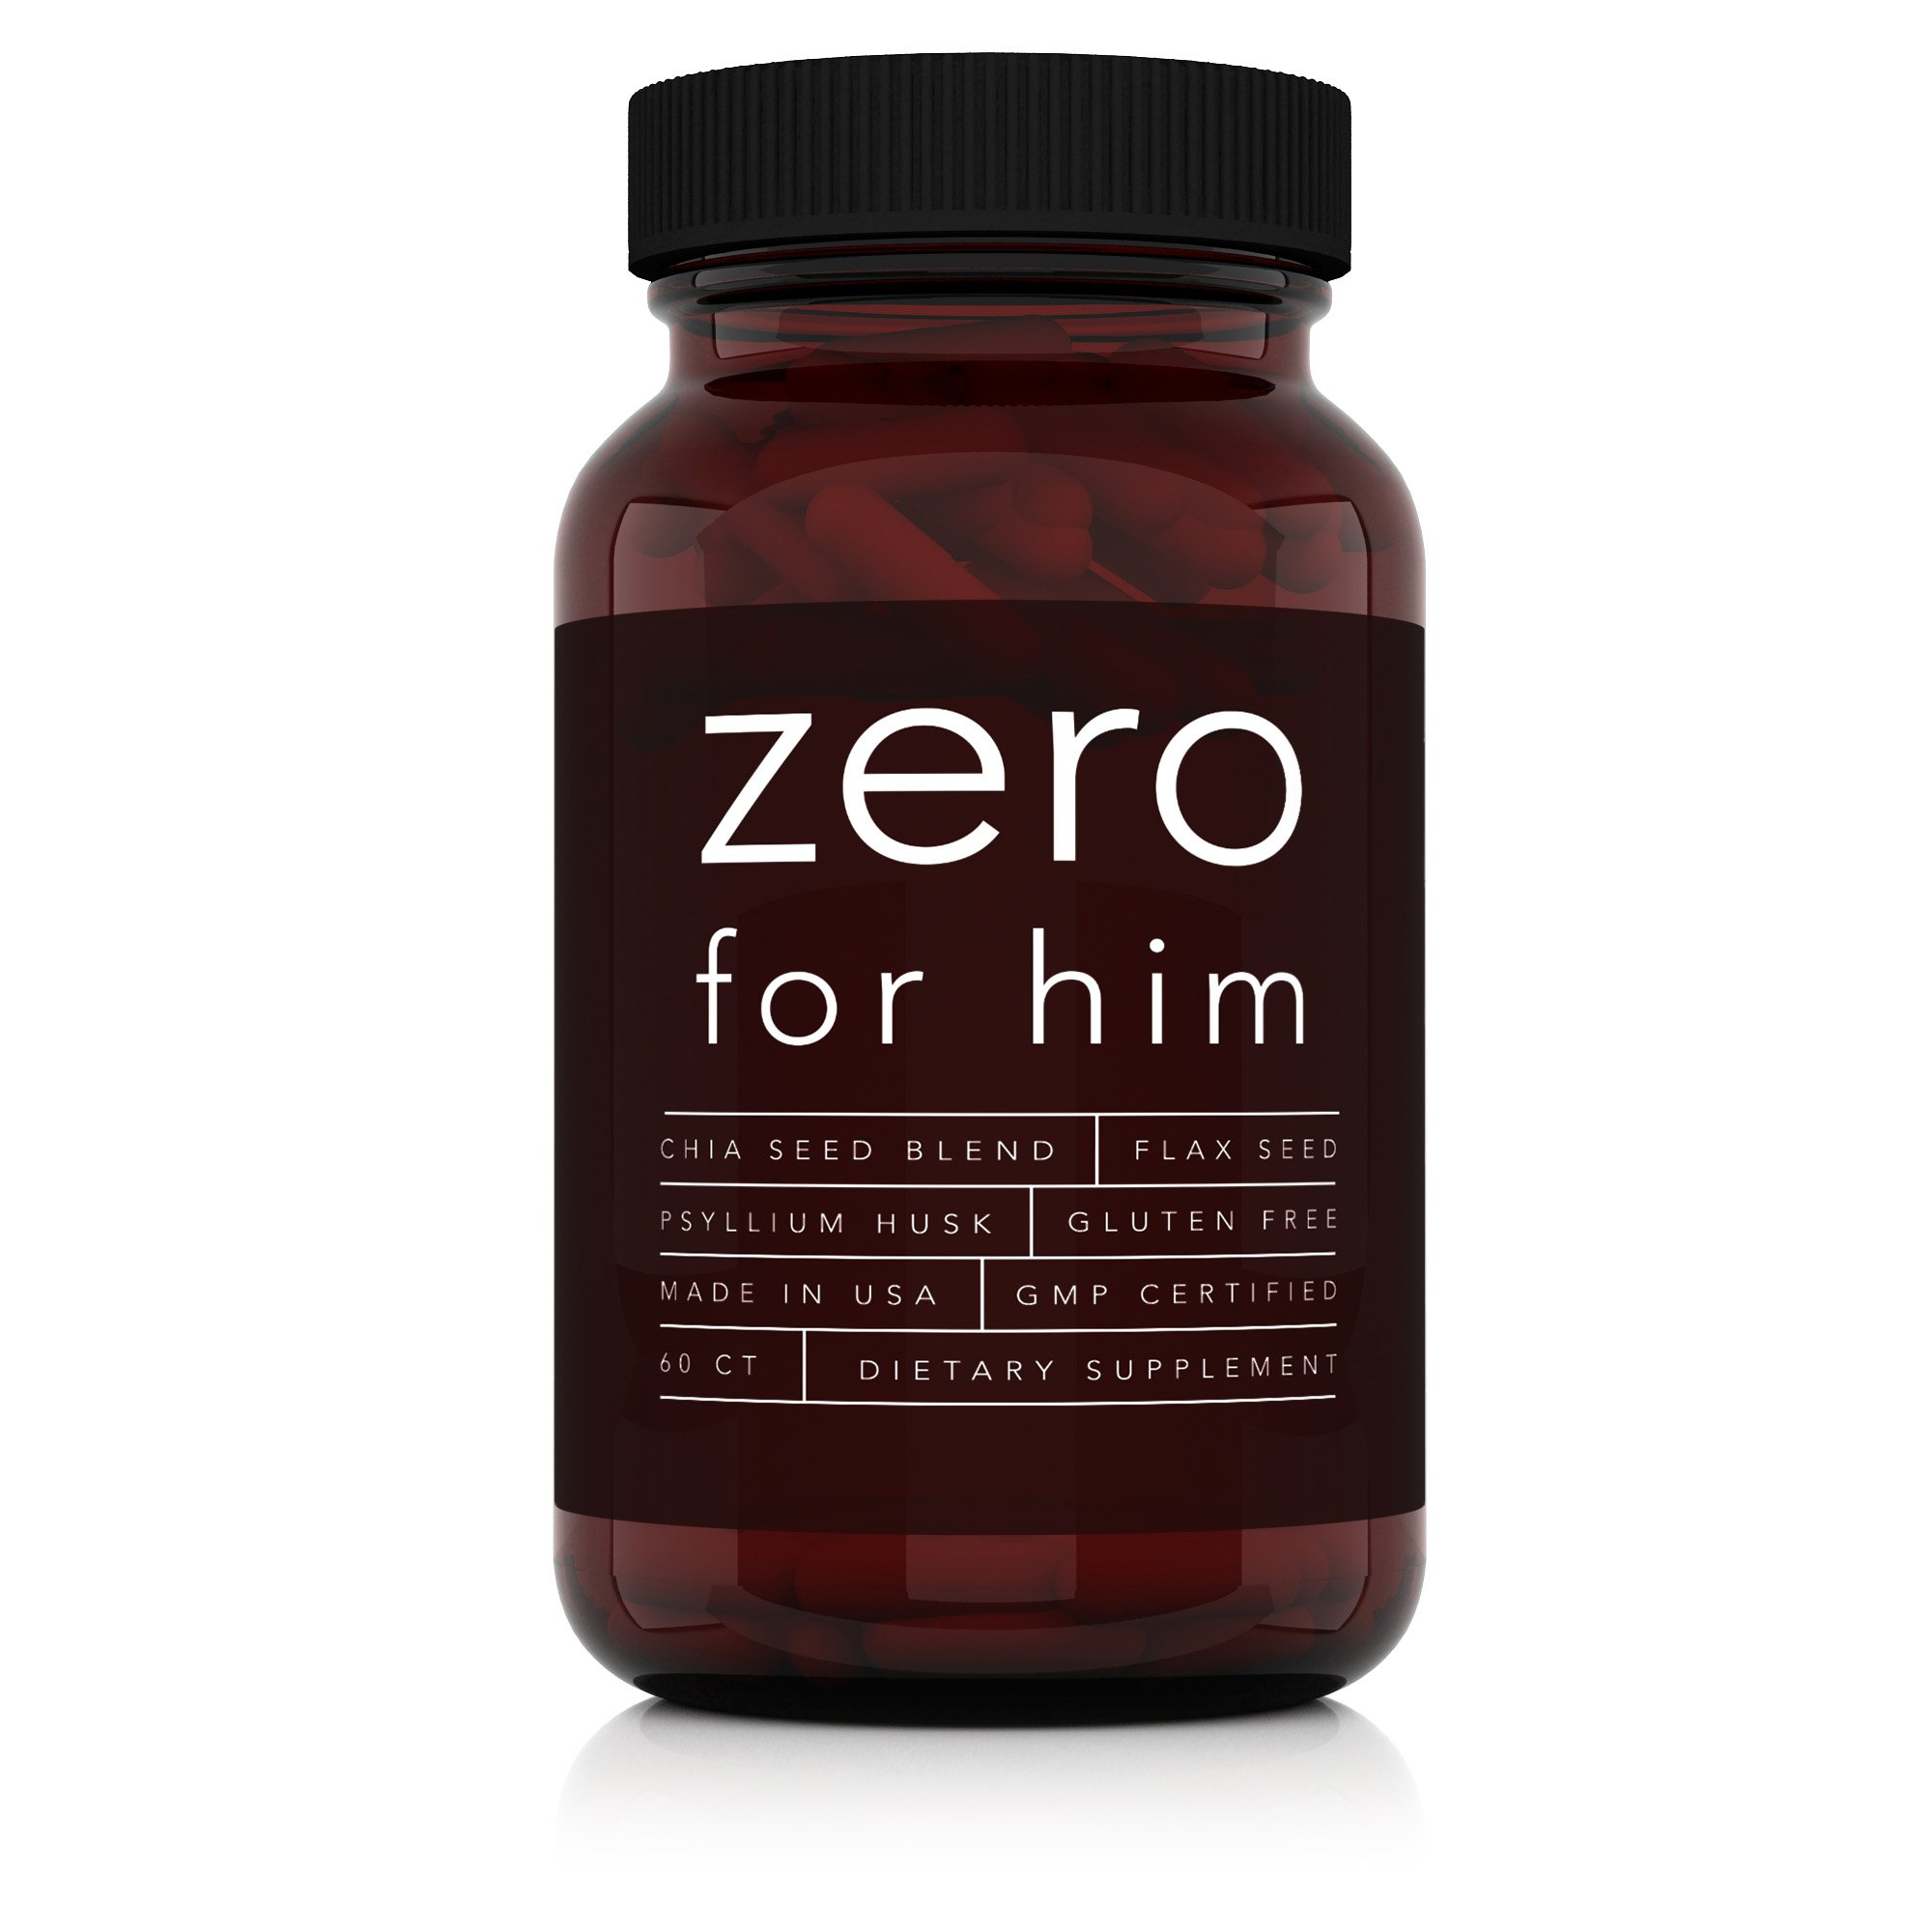 60 CT - Zero for Him Dietary Fiber Supplement for Men, Fiber Pills with Psyllium Husk, Flax Seeds, and Chia Seeds for Digestive Health, for Men Seeking Clean, Fun, and Pure Night Time Play